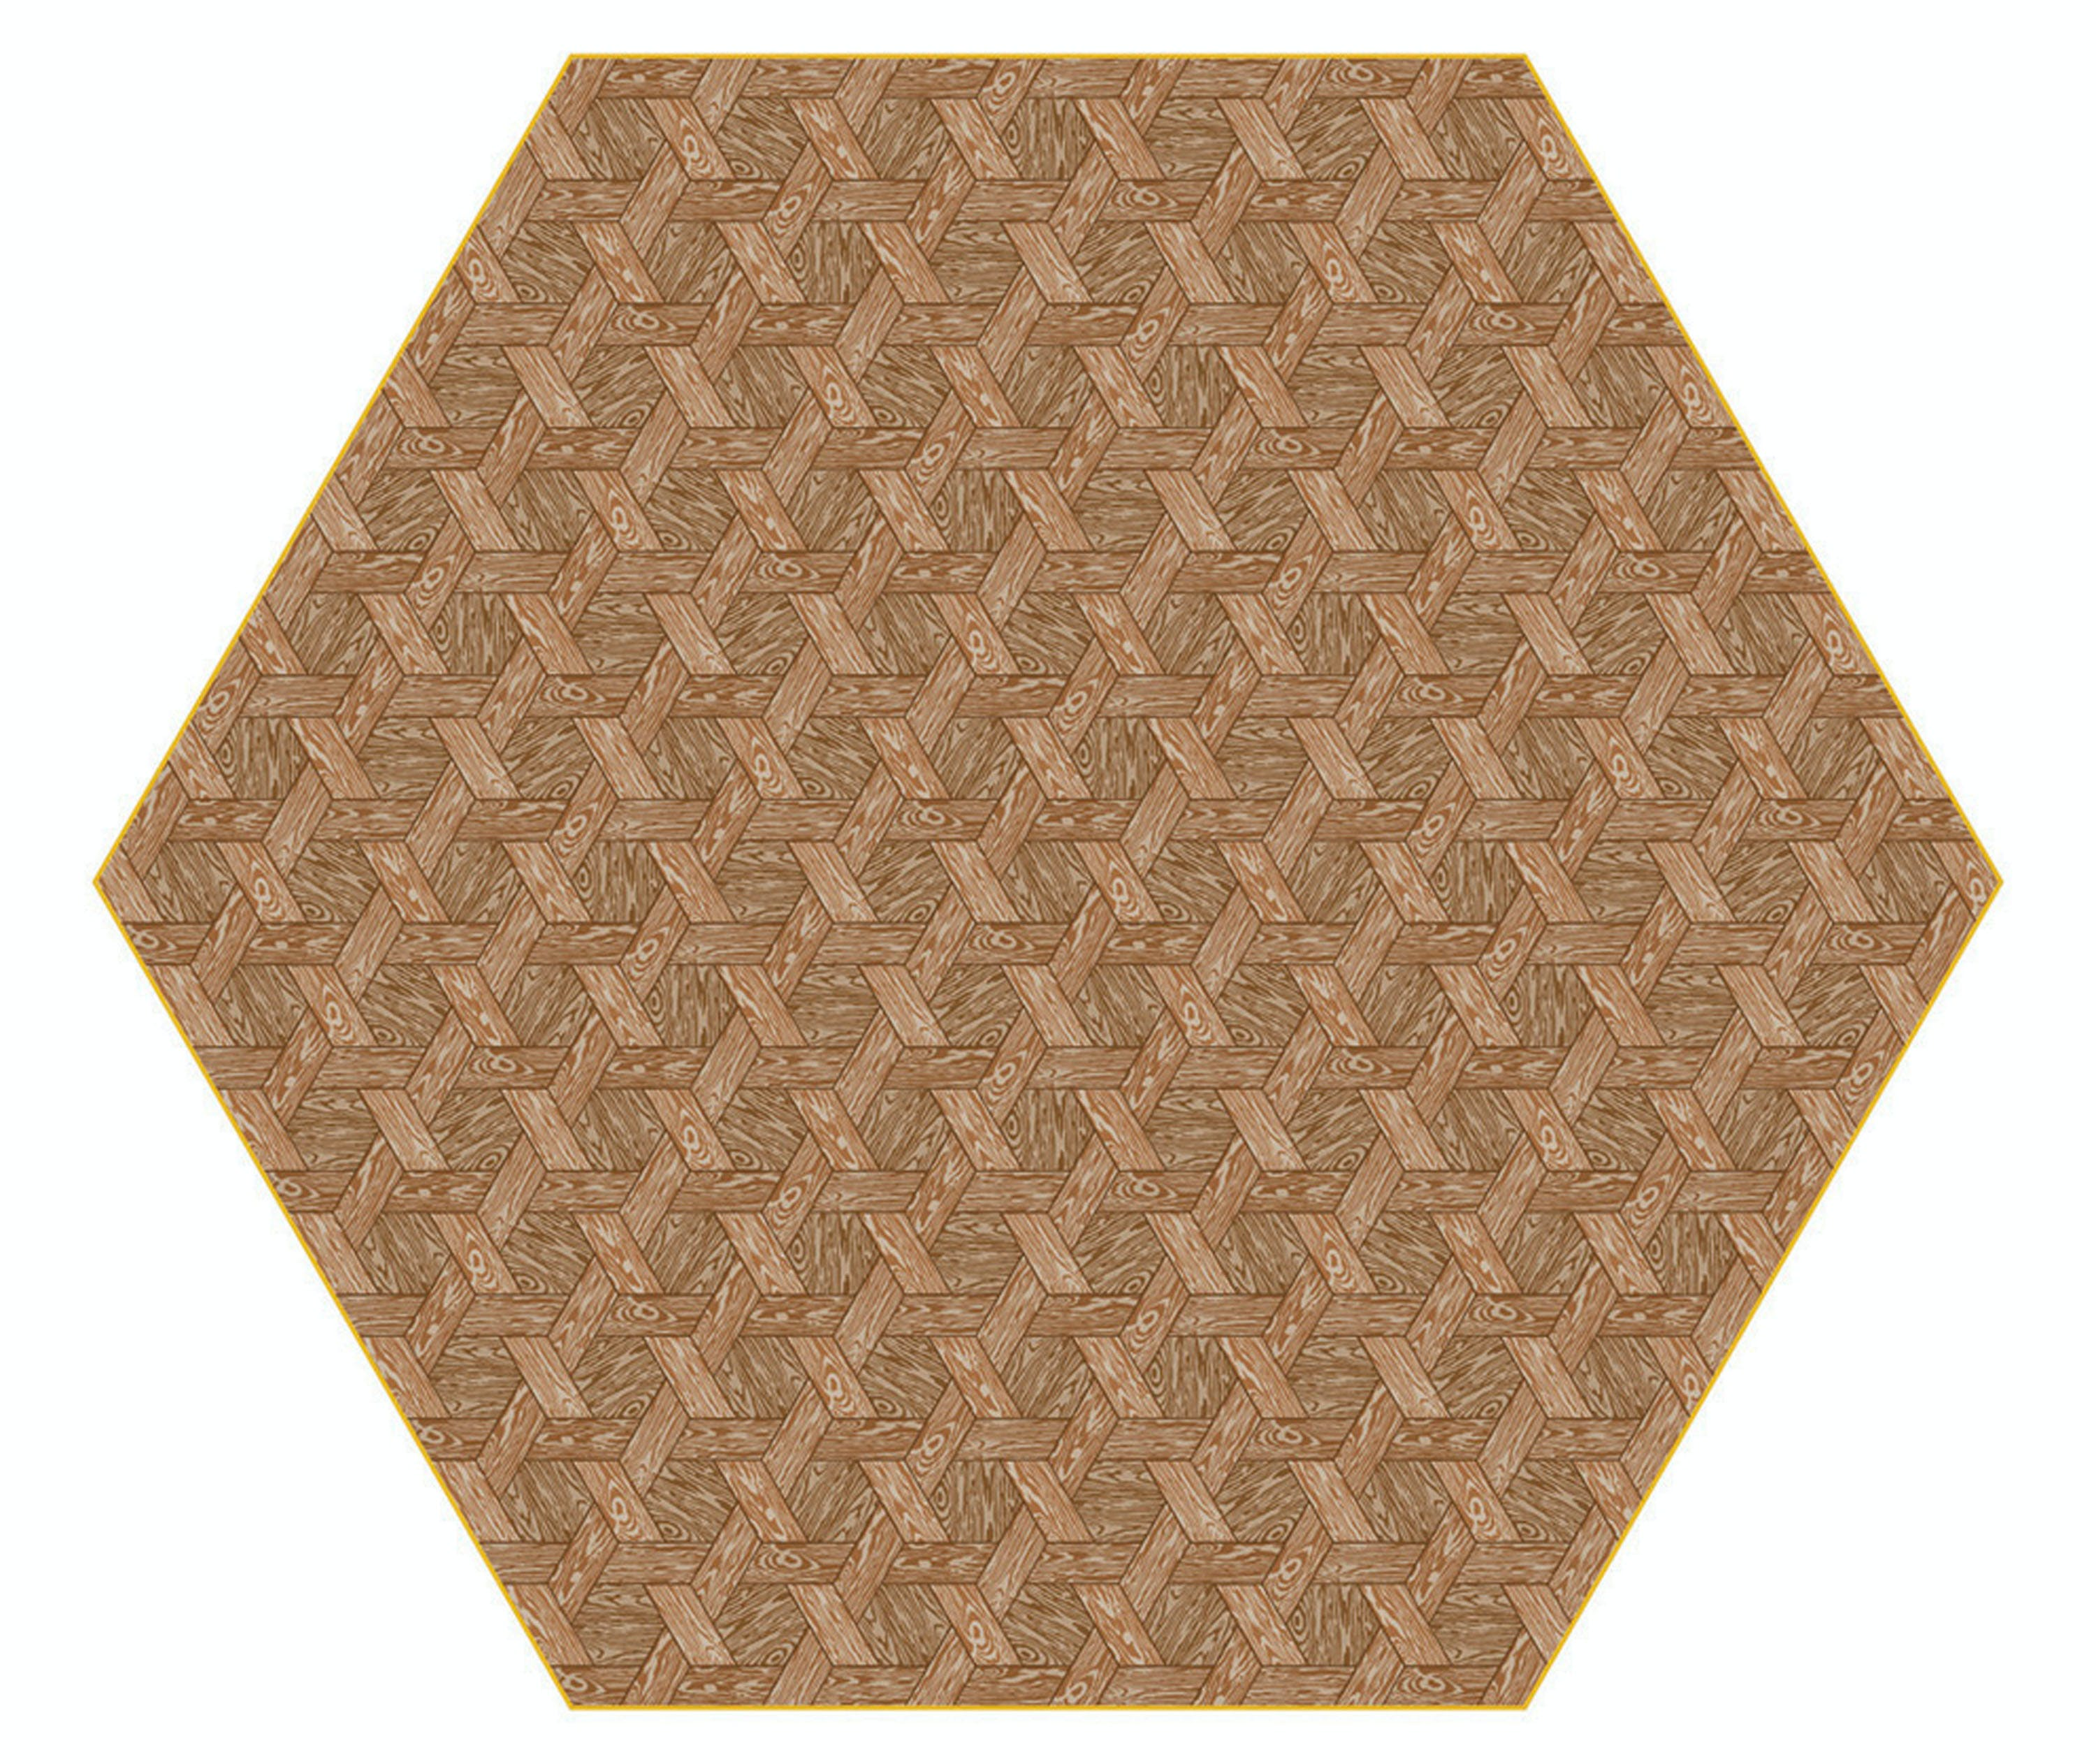 Hexagon Carpet Brown By Studio Job For Moooi Carpets 300Dpi Moooi 1